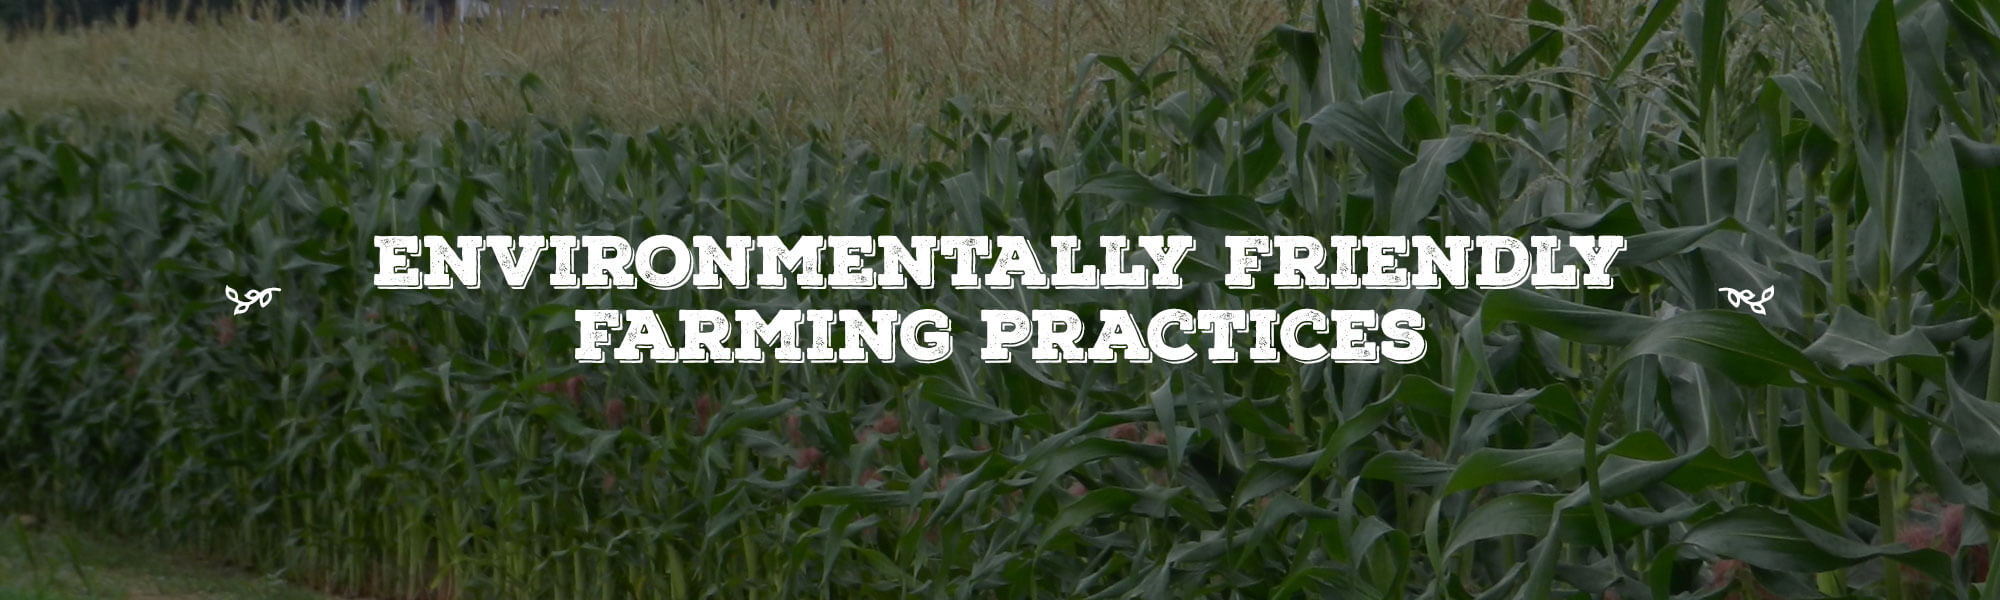 Environmentally Friendly Farming Practices overlay on image Corn Field